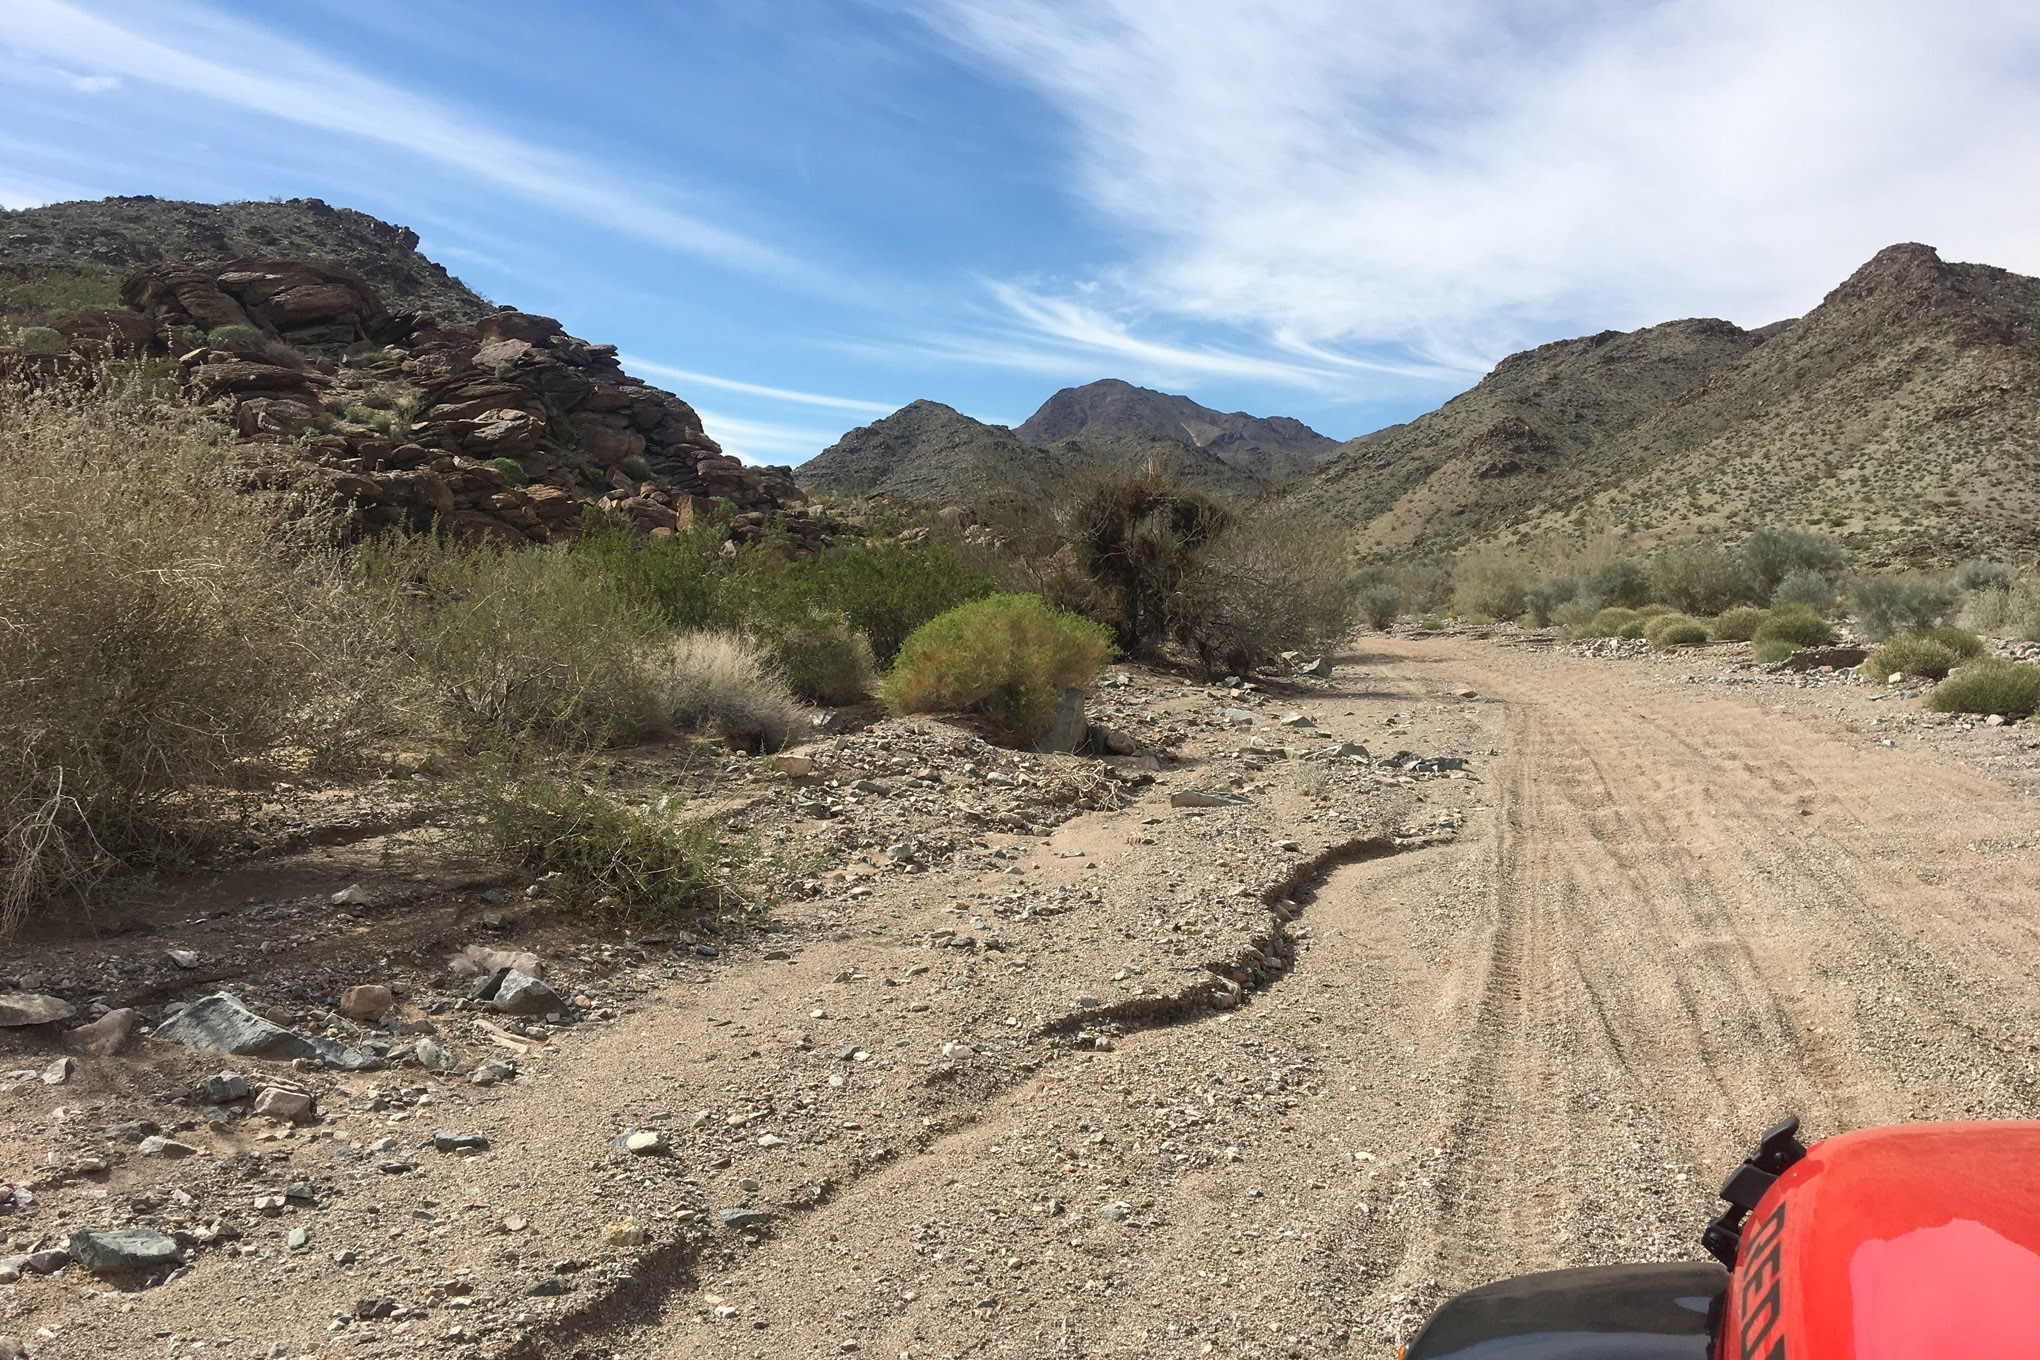 This road doesn't look that tough, but do this for 30 miles and then carefully feel your shocks. The constant vibration is friction that can cook weak shocks to death. Make sure your shocks are large enough capacity for your Jeep, and that they are in good shape before you leave.